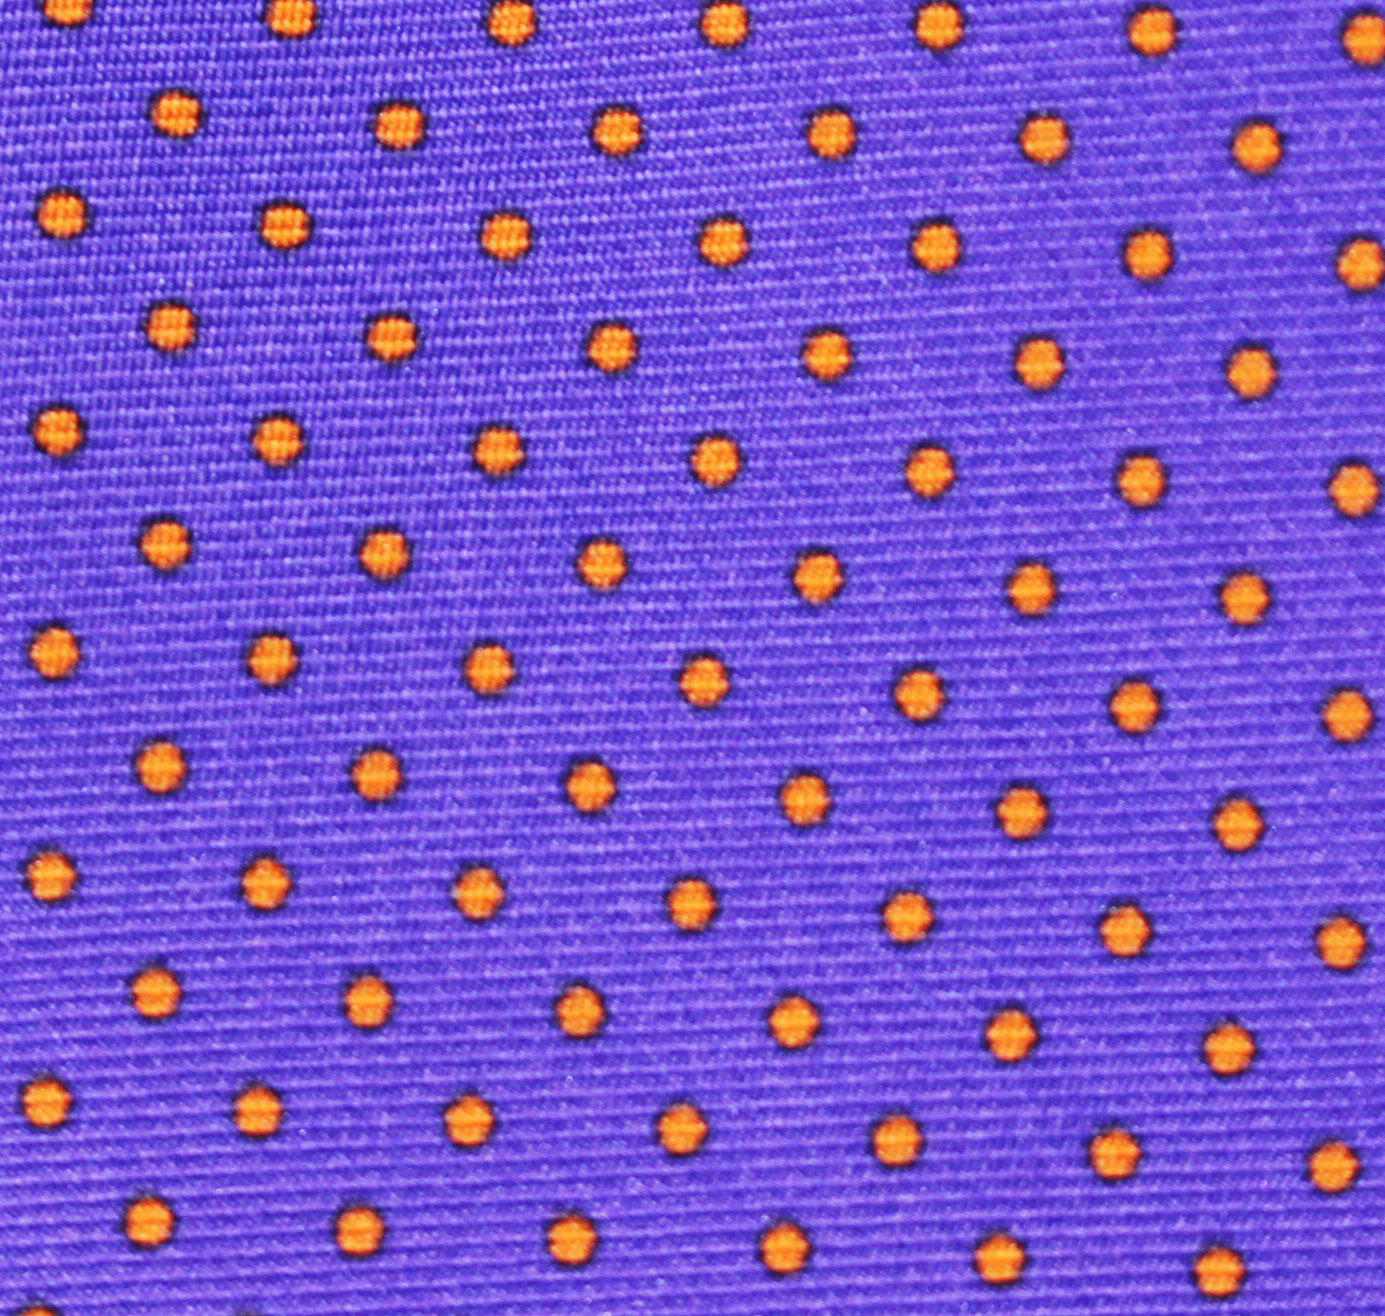 """PURPLE PIN DOT"" - Printed silk."